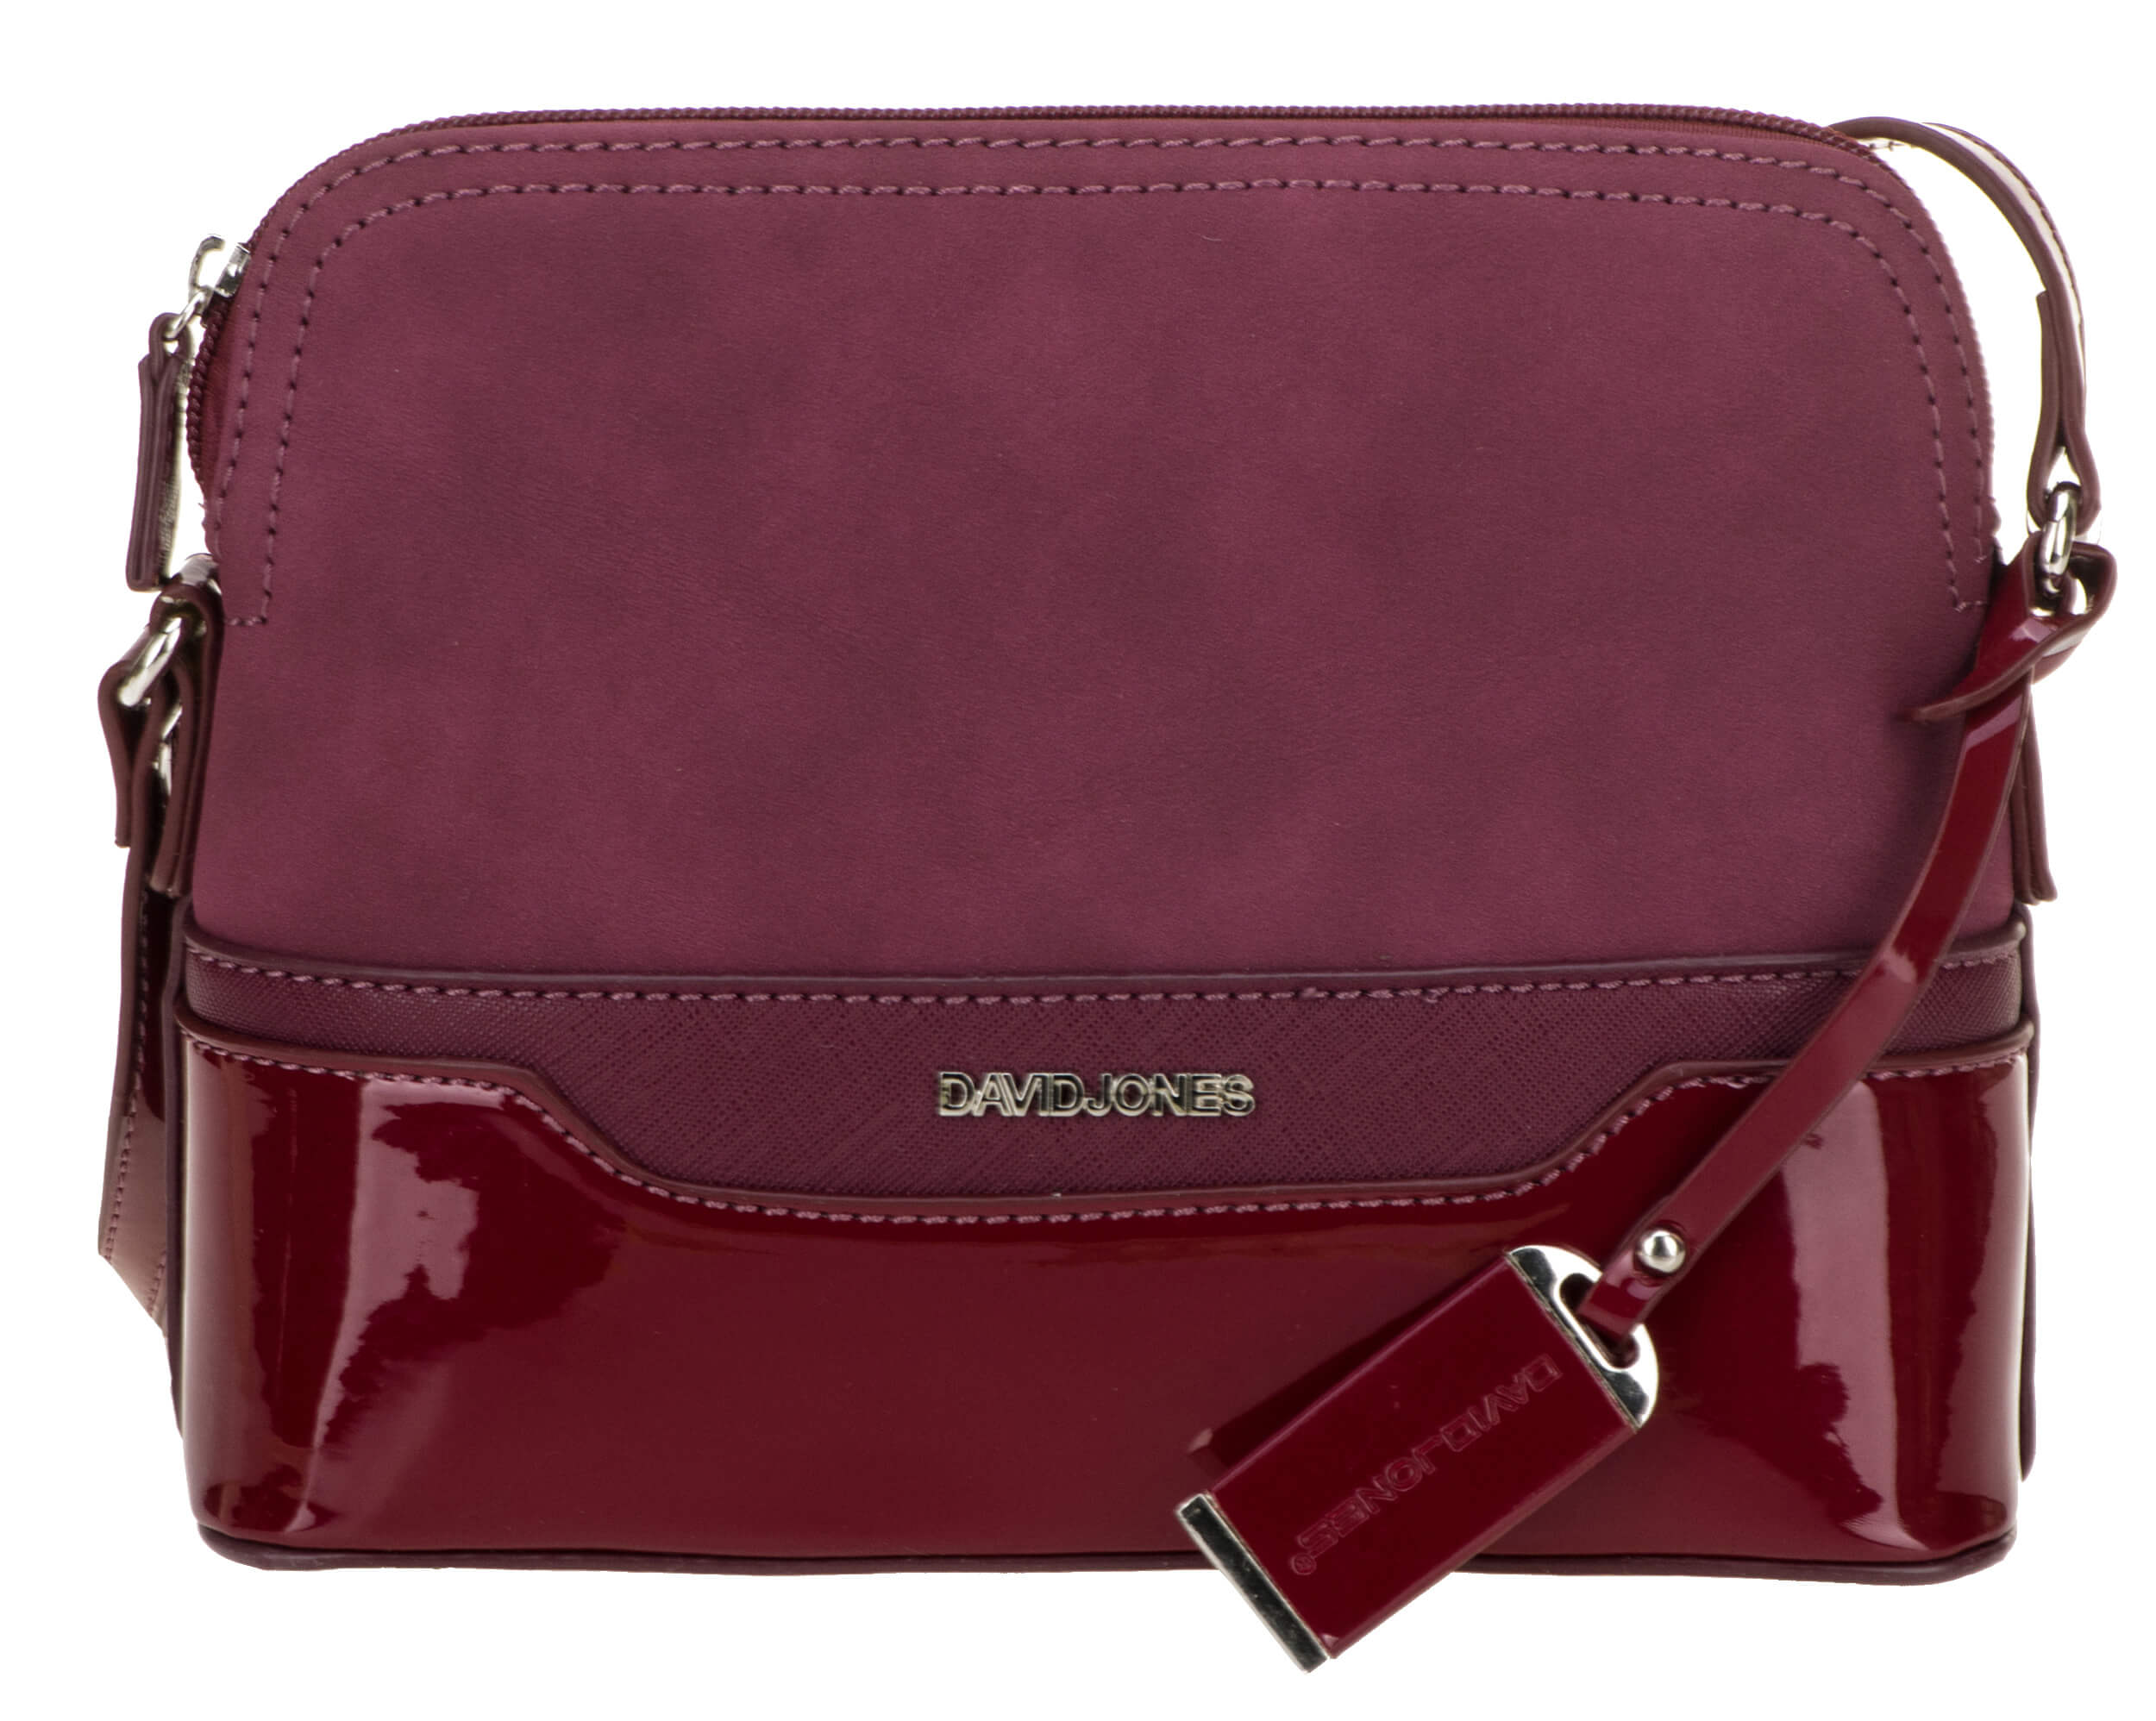 c050b6a409 David Jones Dámska crossbody kabelka Dark Bordeaux 5808-1